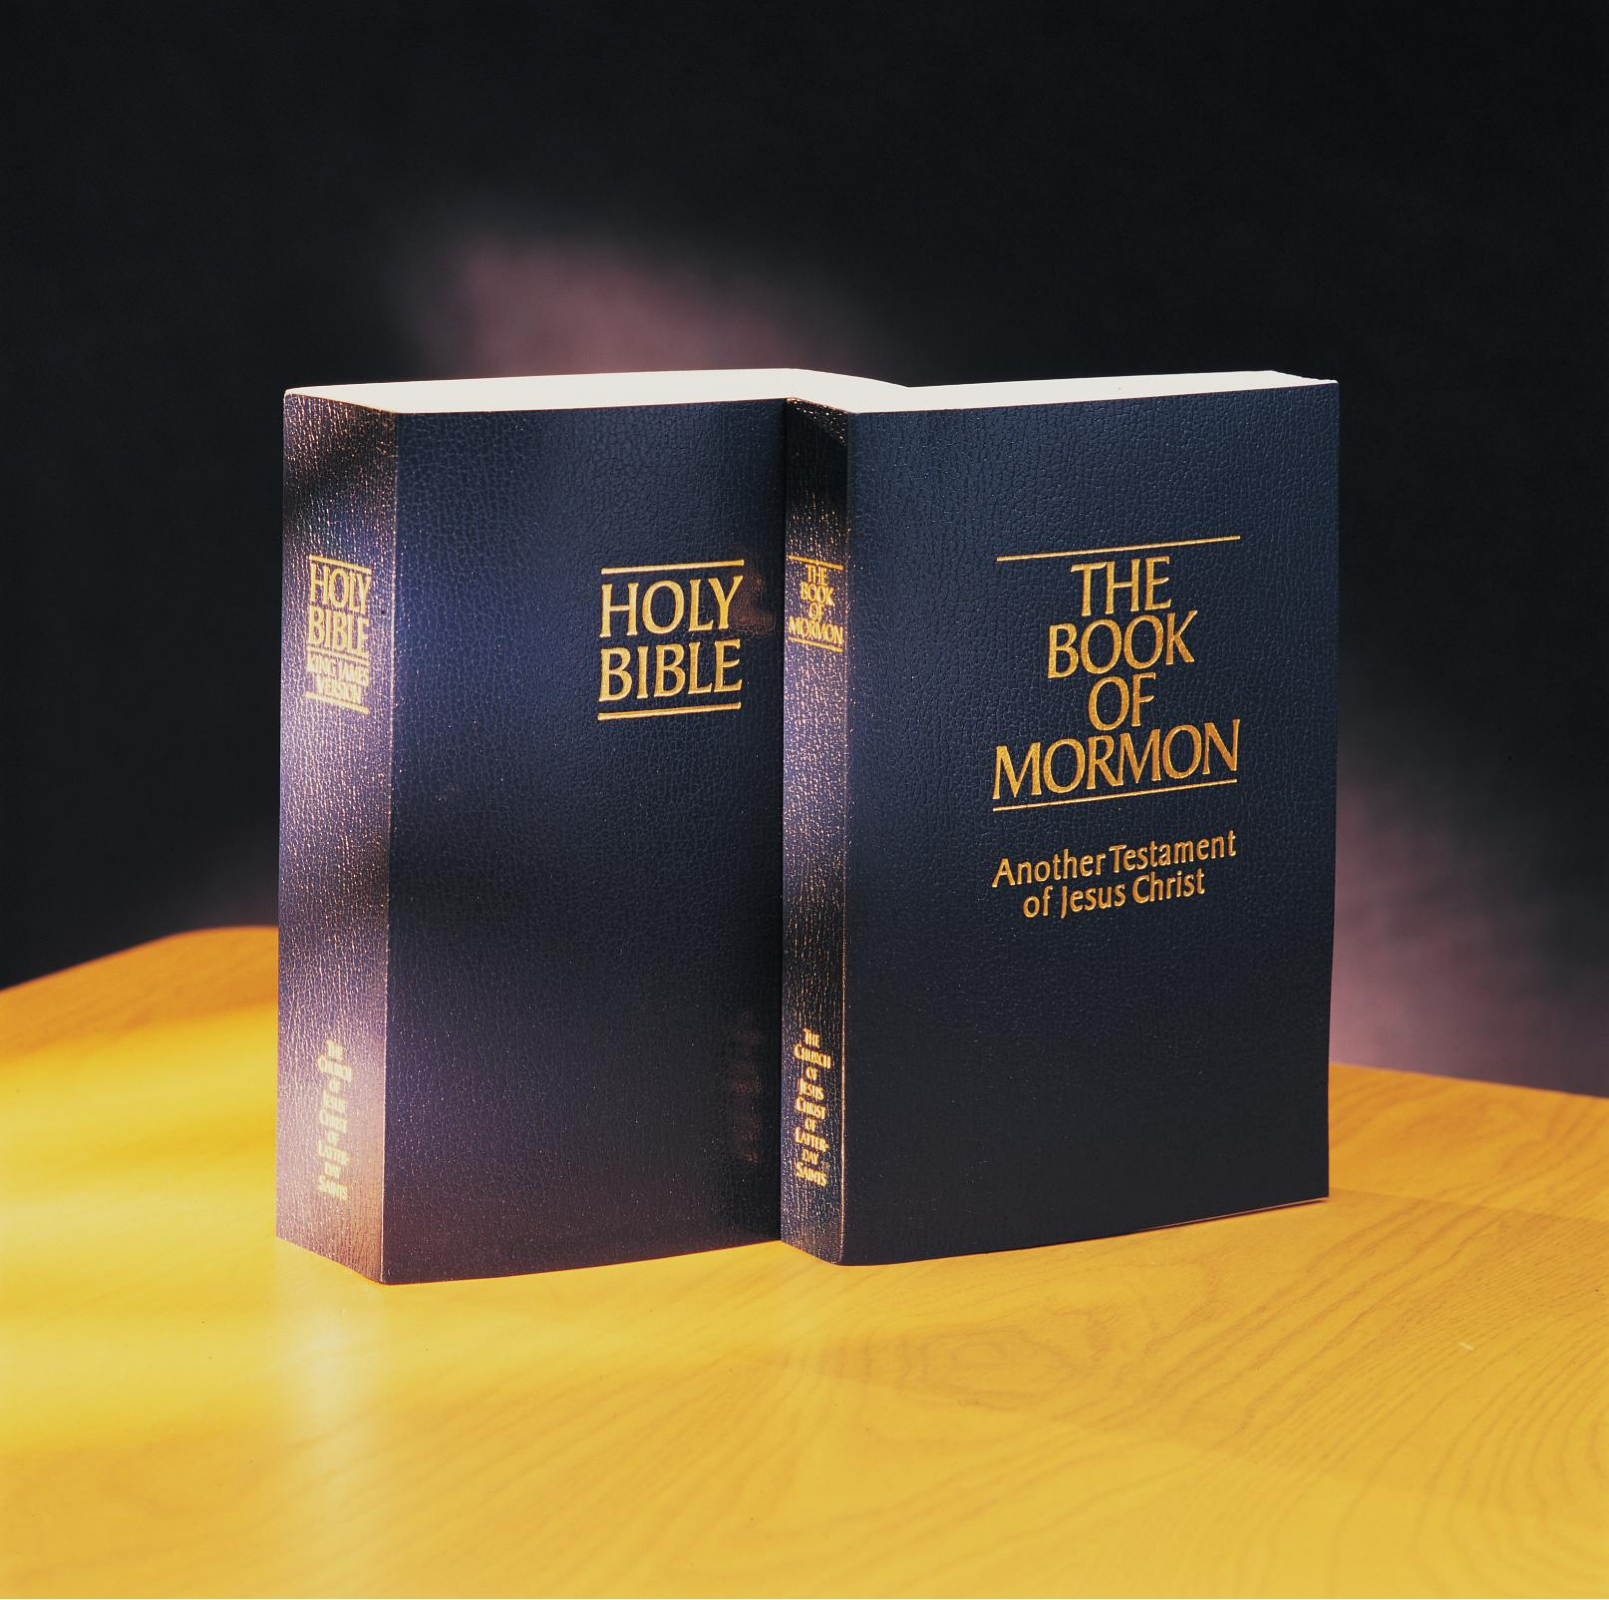 Image result for book of mormon and bible